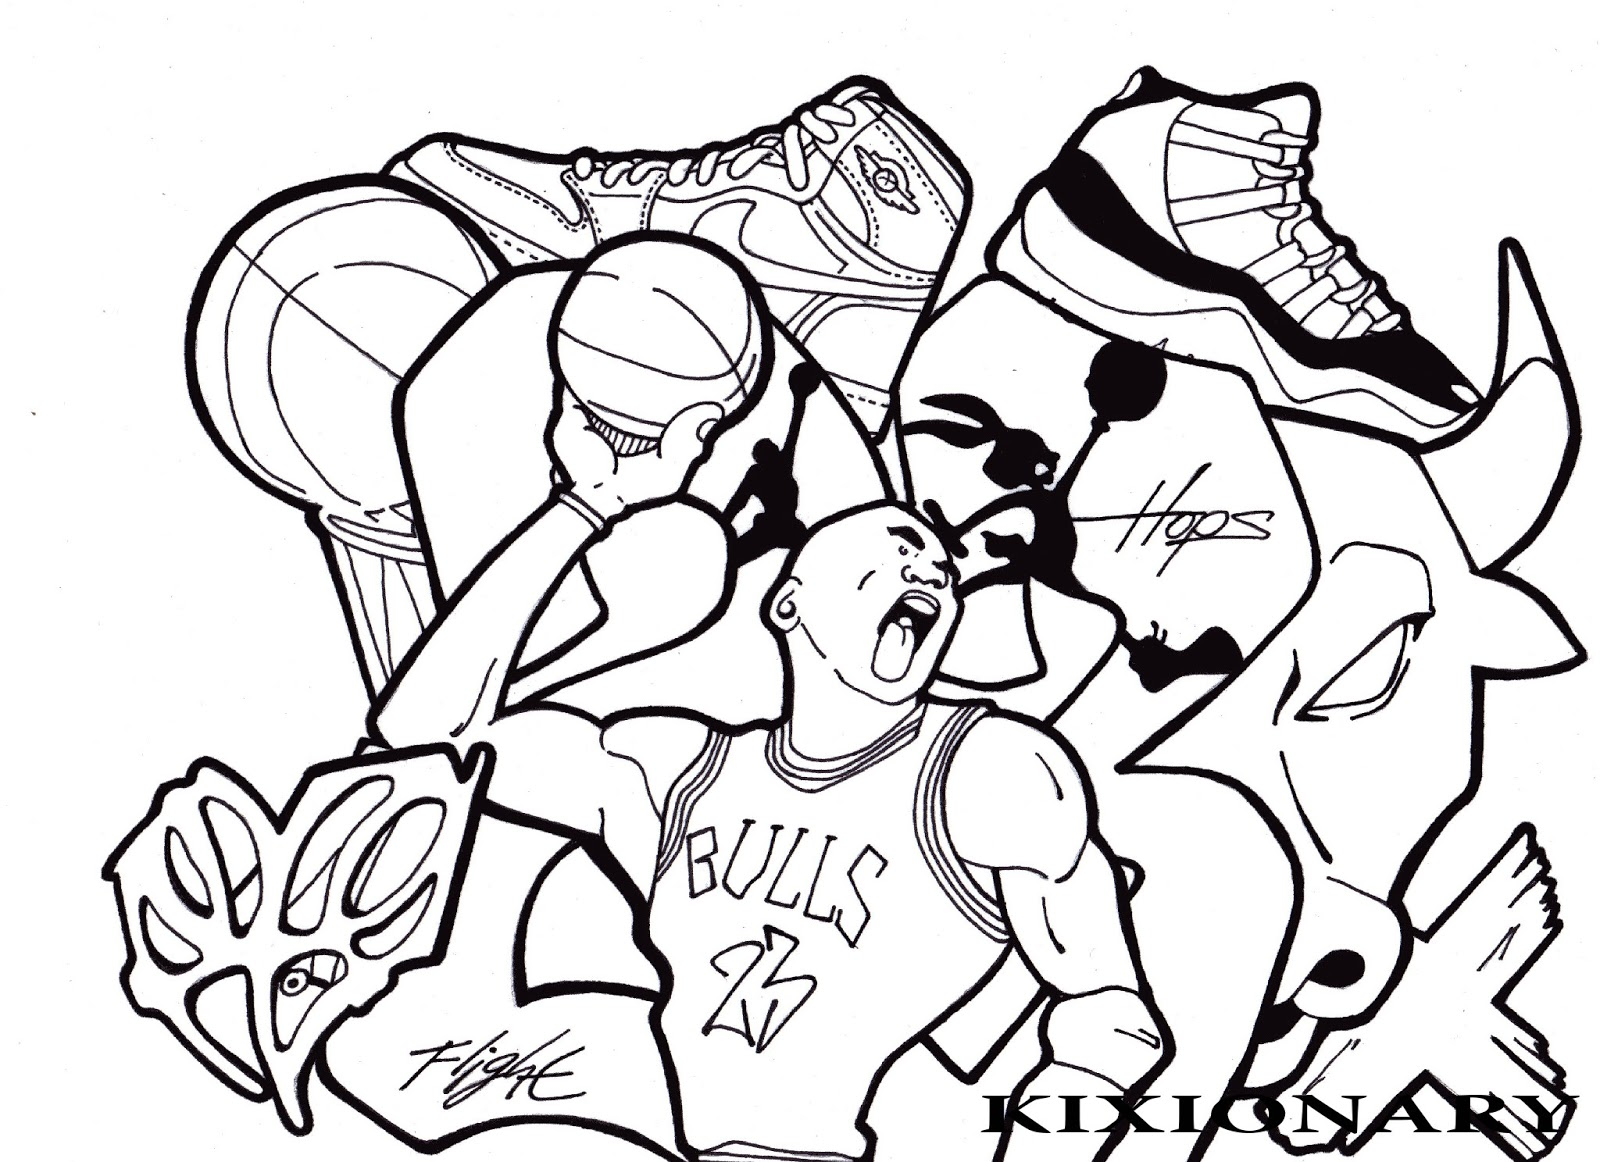 free coloring pages of kevin durant shoes